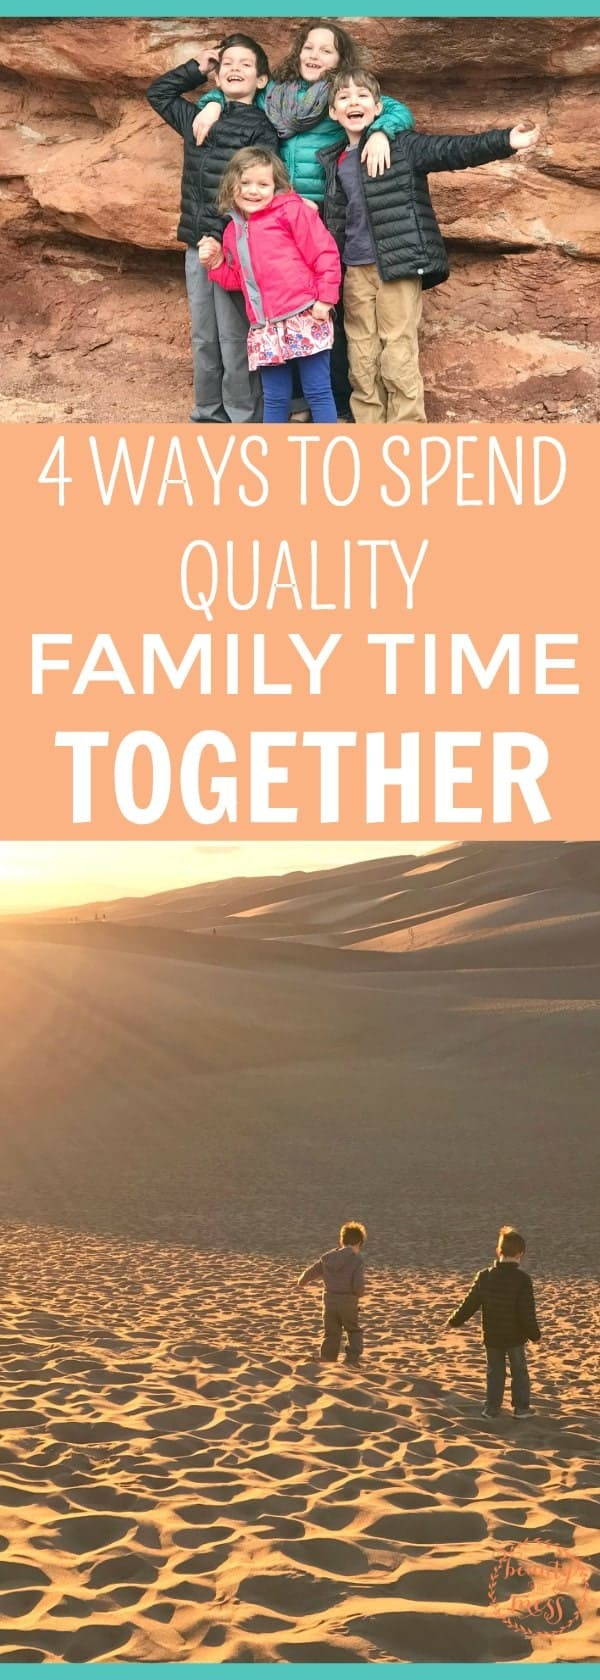 Mom life is crazy. Running around from one activity to the next. Trying to keep everyone fed and clothed whilesimultaneously keeping the house stocked with essentials and spending quality family time together isn't easy. Don't miss these 4 ways to spend more time together as a family. via @simplifyingfamily